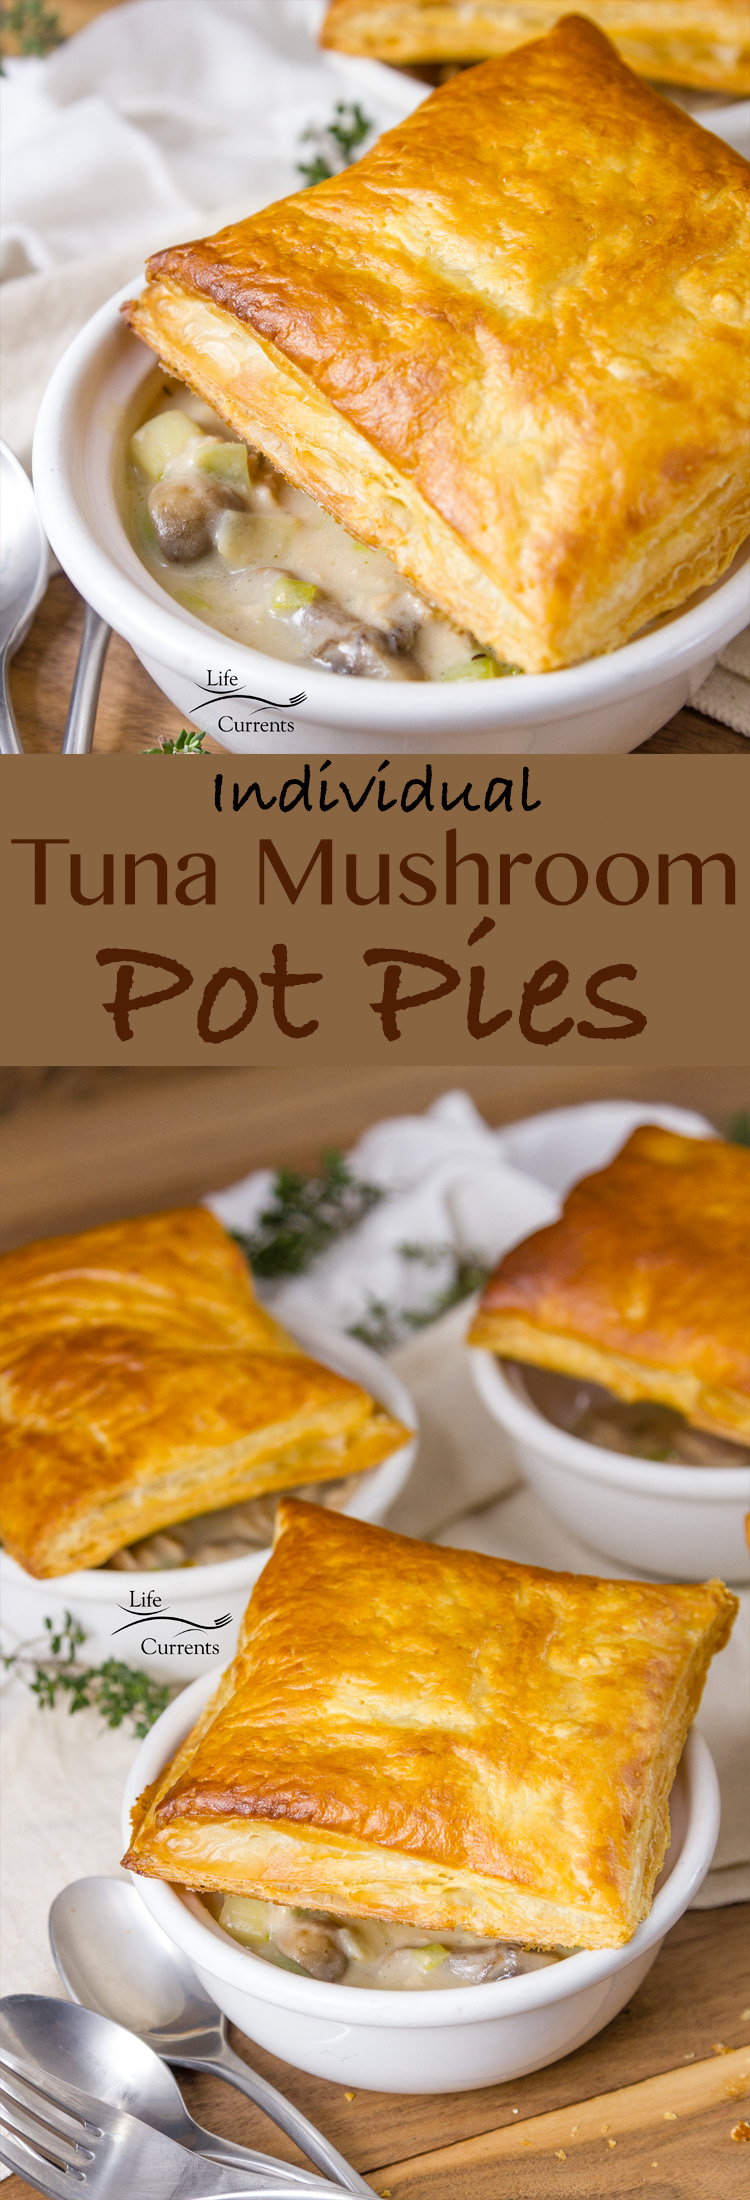 These Individual Tuna Mushroom Pot Pies made with Island Trollers Albacore Tuna are so much fun and super yummy #ad